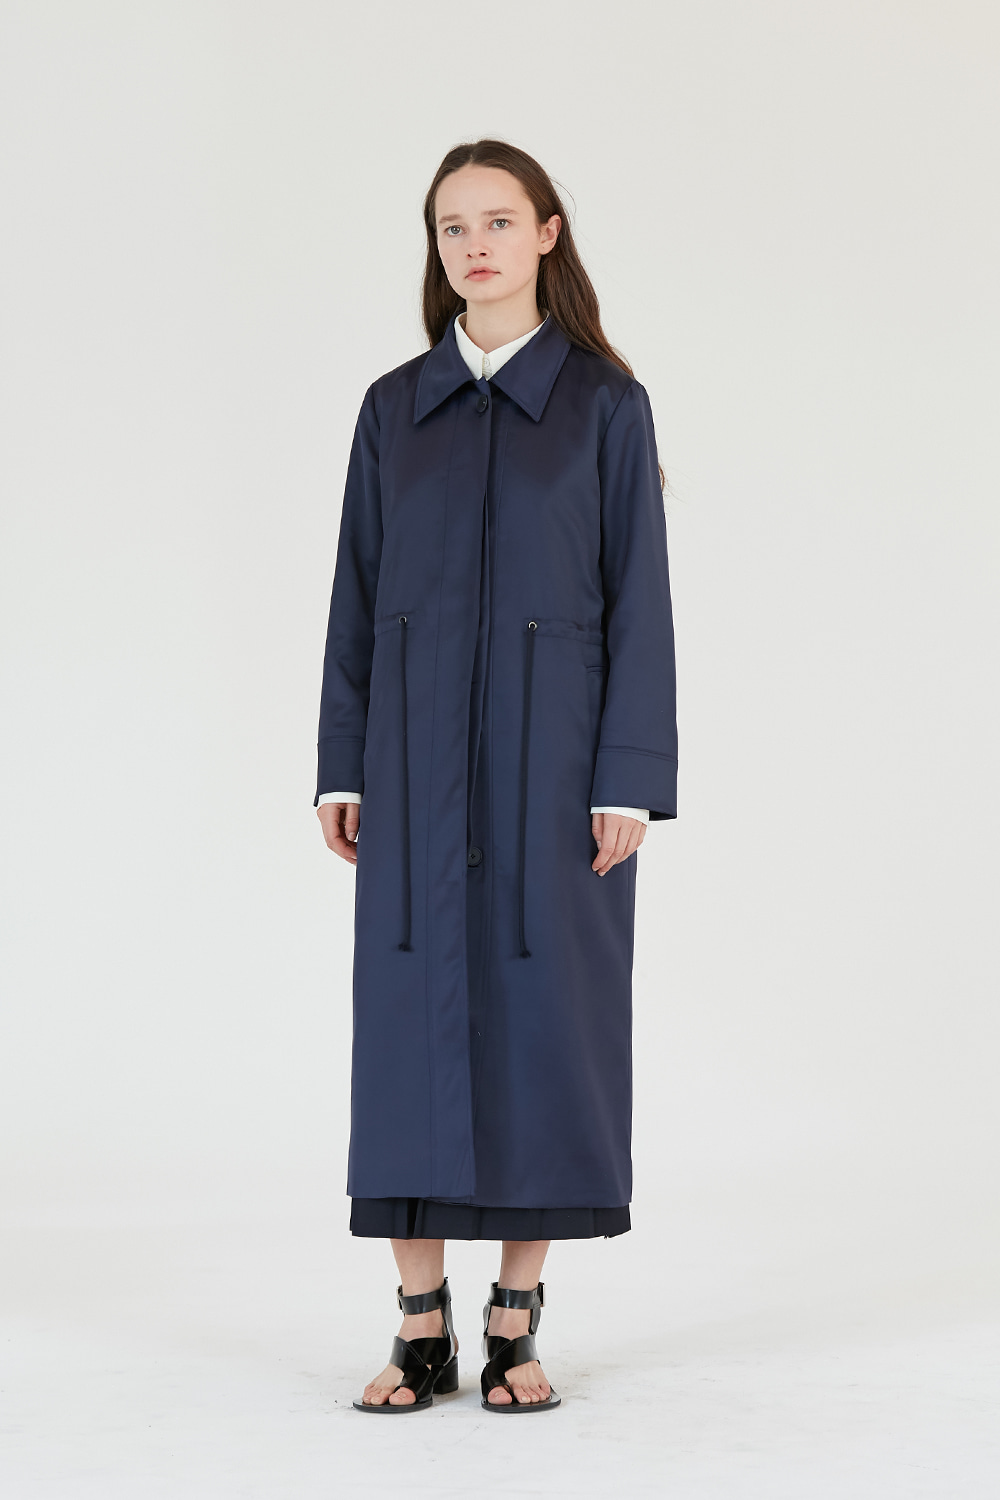 Satin Coat Women [Navy]